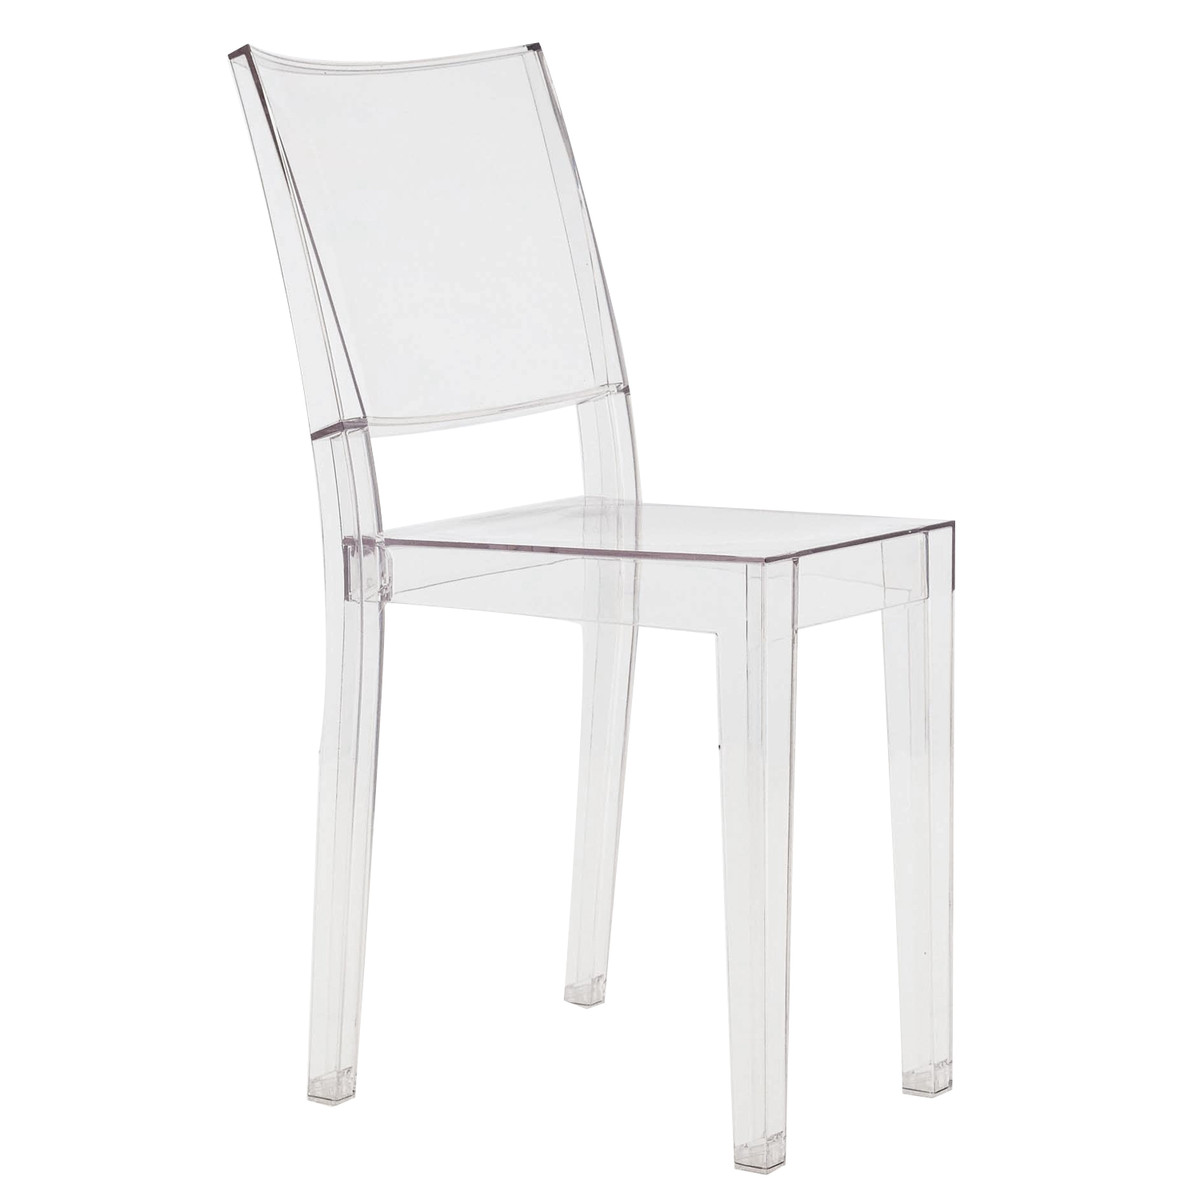 La Marie chair Transparent (2 units packaging)